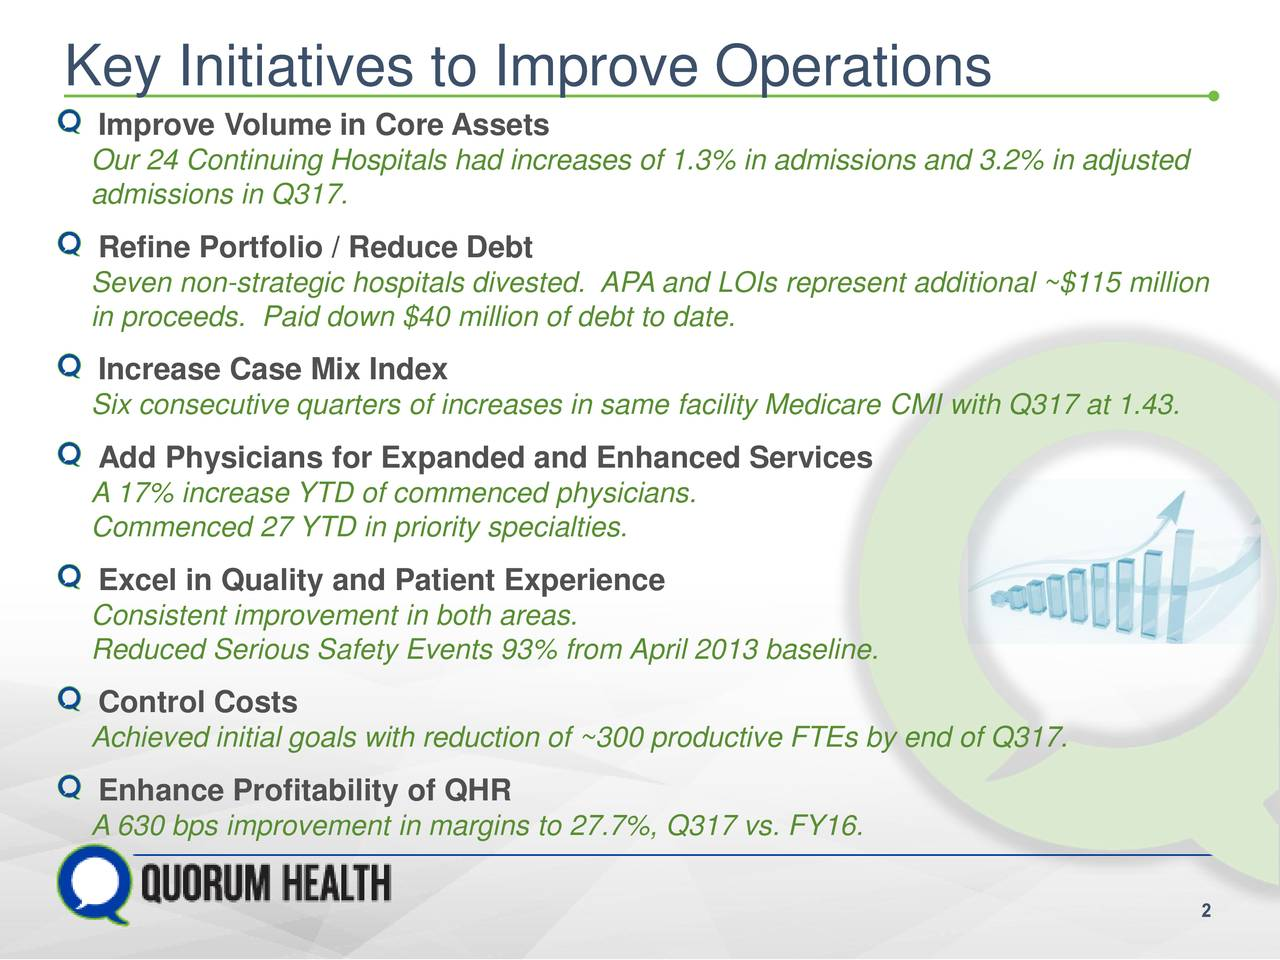 147 237 67 Key Initiatives to Improve Operations Improve Volume in Core Assets 208 63 165 Our 24 Continuing Hospitals had increases of 1.3% in admissions and 3.2% in adjusted 179 63 165 admissions in Q317. Refine Portfolio / Reduce Debt Seven non-strategic hospitals divested. APA and LOIs represent additional ~$115 million in proceeds. Paid down $40 million of debt to date. Increase Case Mix Index Six consecutive quarters of increases in same facility Medicare CMI with Q317 at 1.43. Add Physicians for Expanded and Enhanced Services A 17% increase YTD of commenced physicians. Commenced 27 YTD in priority specialties. Excel in Quality and Patient Experience Consistent improvement in both areas. Reduced Serious Safety Events 93% from April 2013 baseline. Control Costs Achieved initial goals with reduction of ~300 productive FTEs by end of Q317. Enhance Profitability of QHR A 630 bps improvement in margins to 27.7%, Q317 vs. FY16.